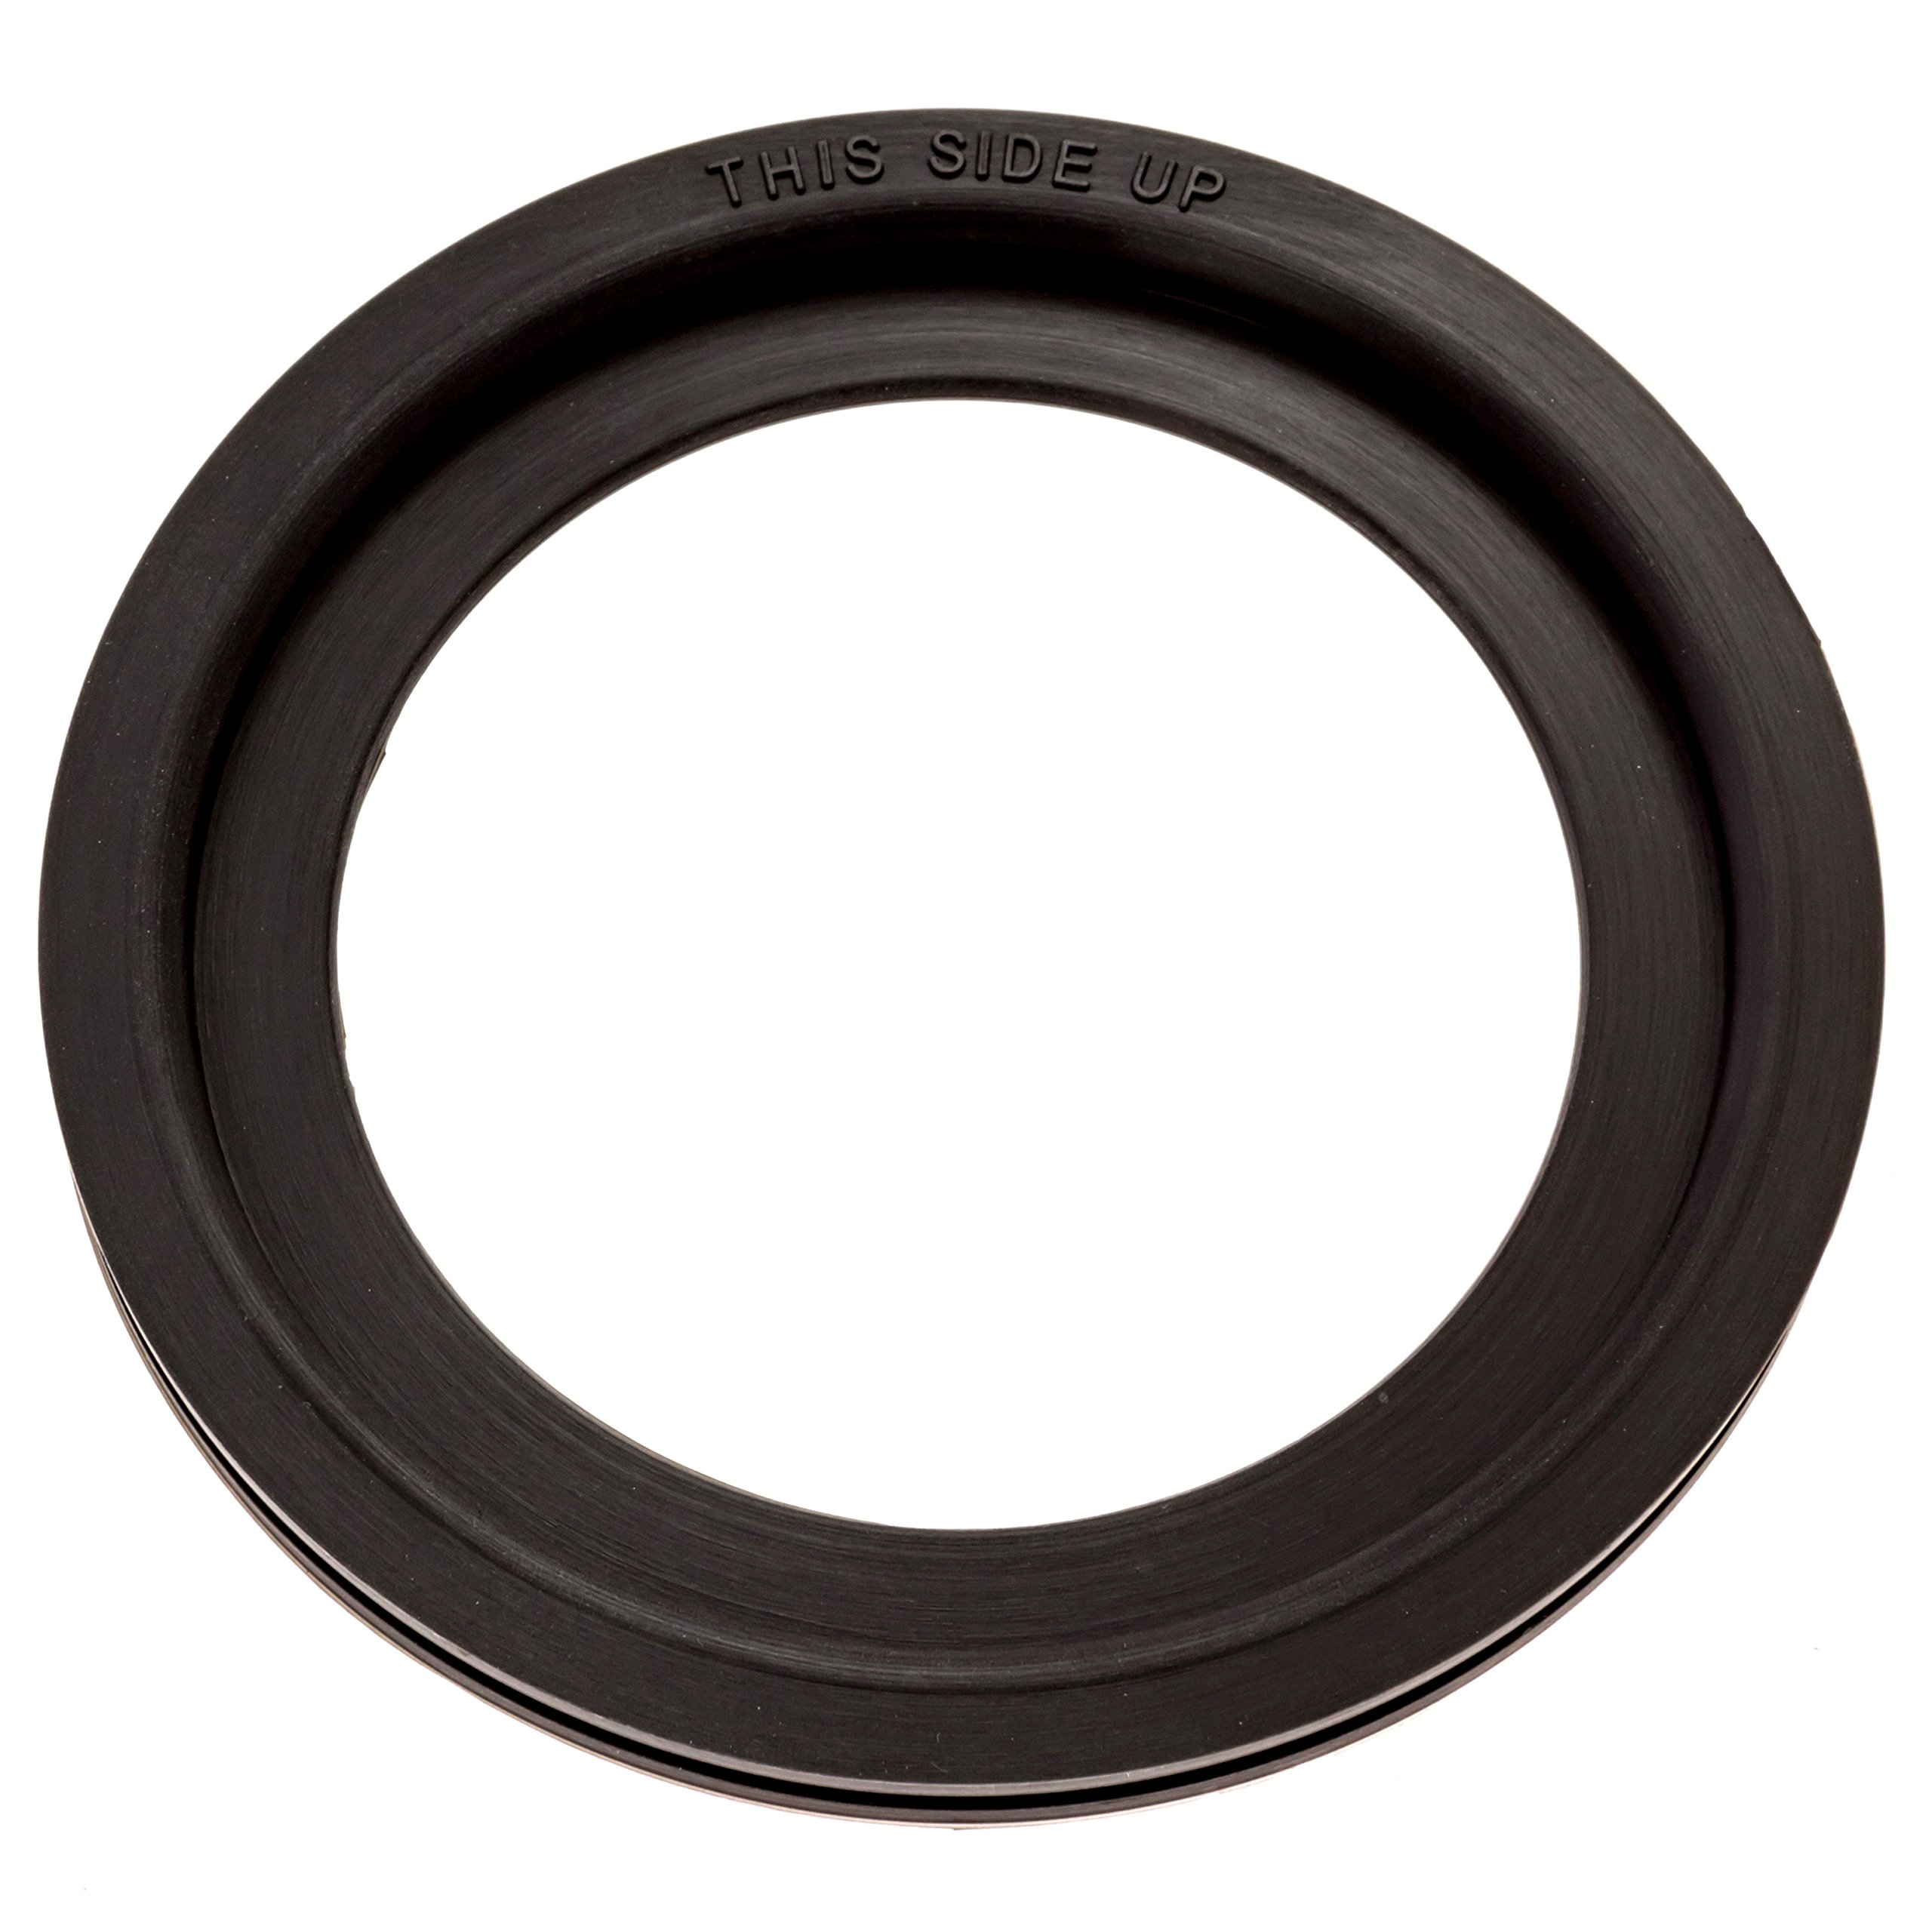 Mission Automotive Dometic -Compatible Flush Ball Seal for 300/310 / 320 RV Toilets - Comparable to Parts Number 385311658 Kit - Ideal Replacement Gasket by Mission Automotive